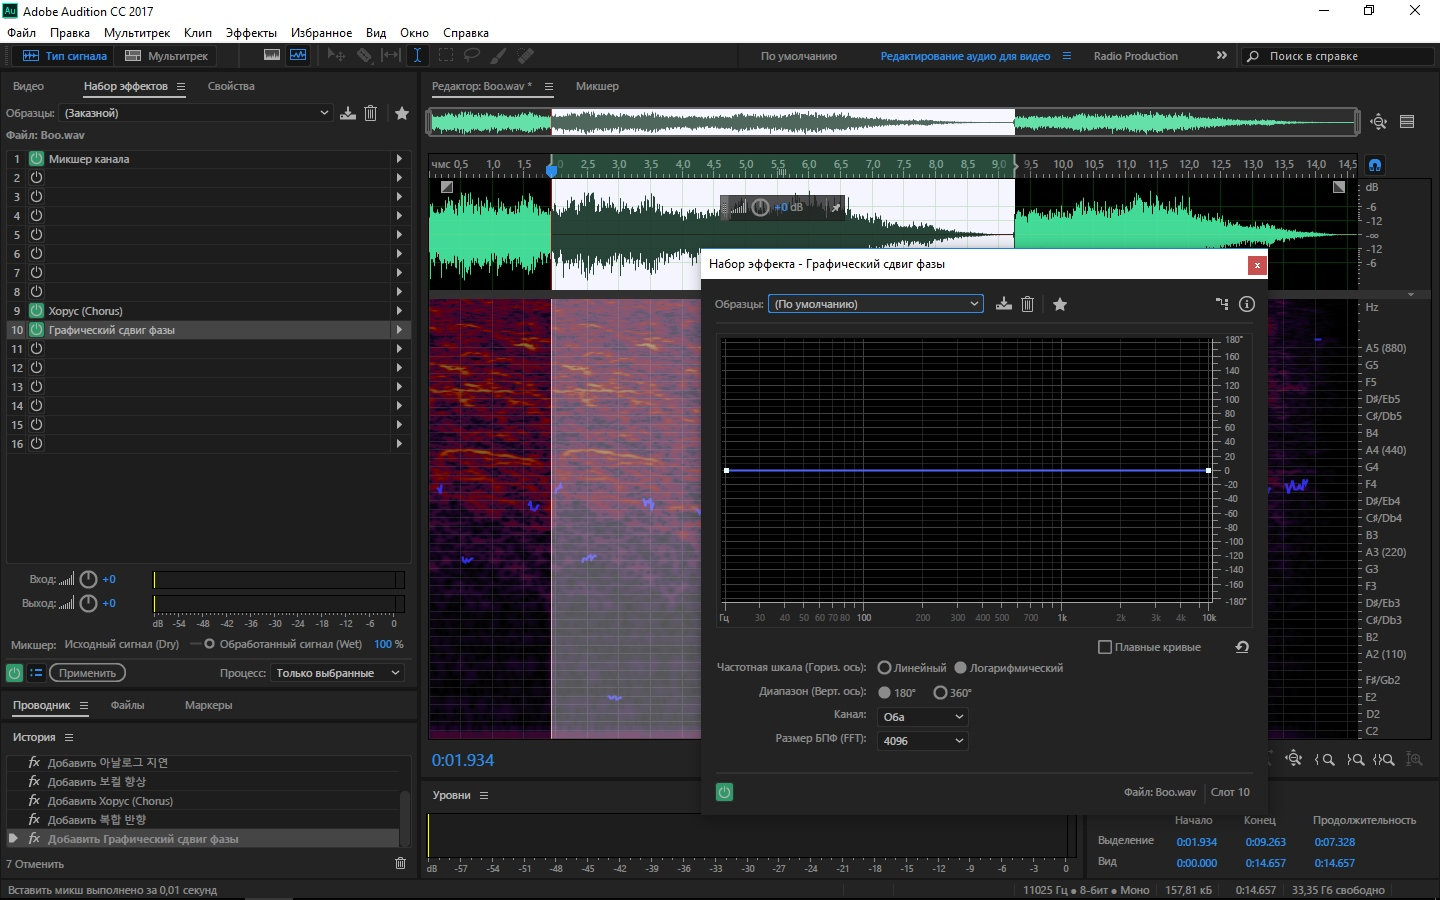 Adobe Audition CC 2017.0.1 10.0.1.8 RePack by KpoJIuK